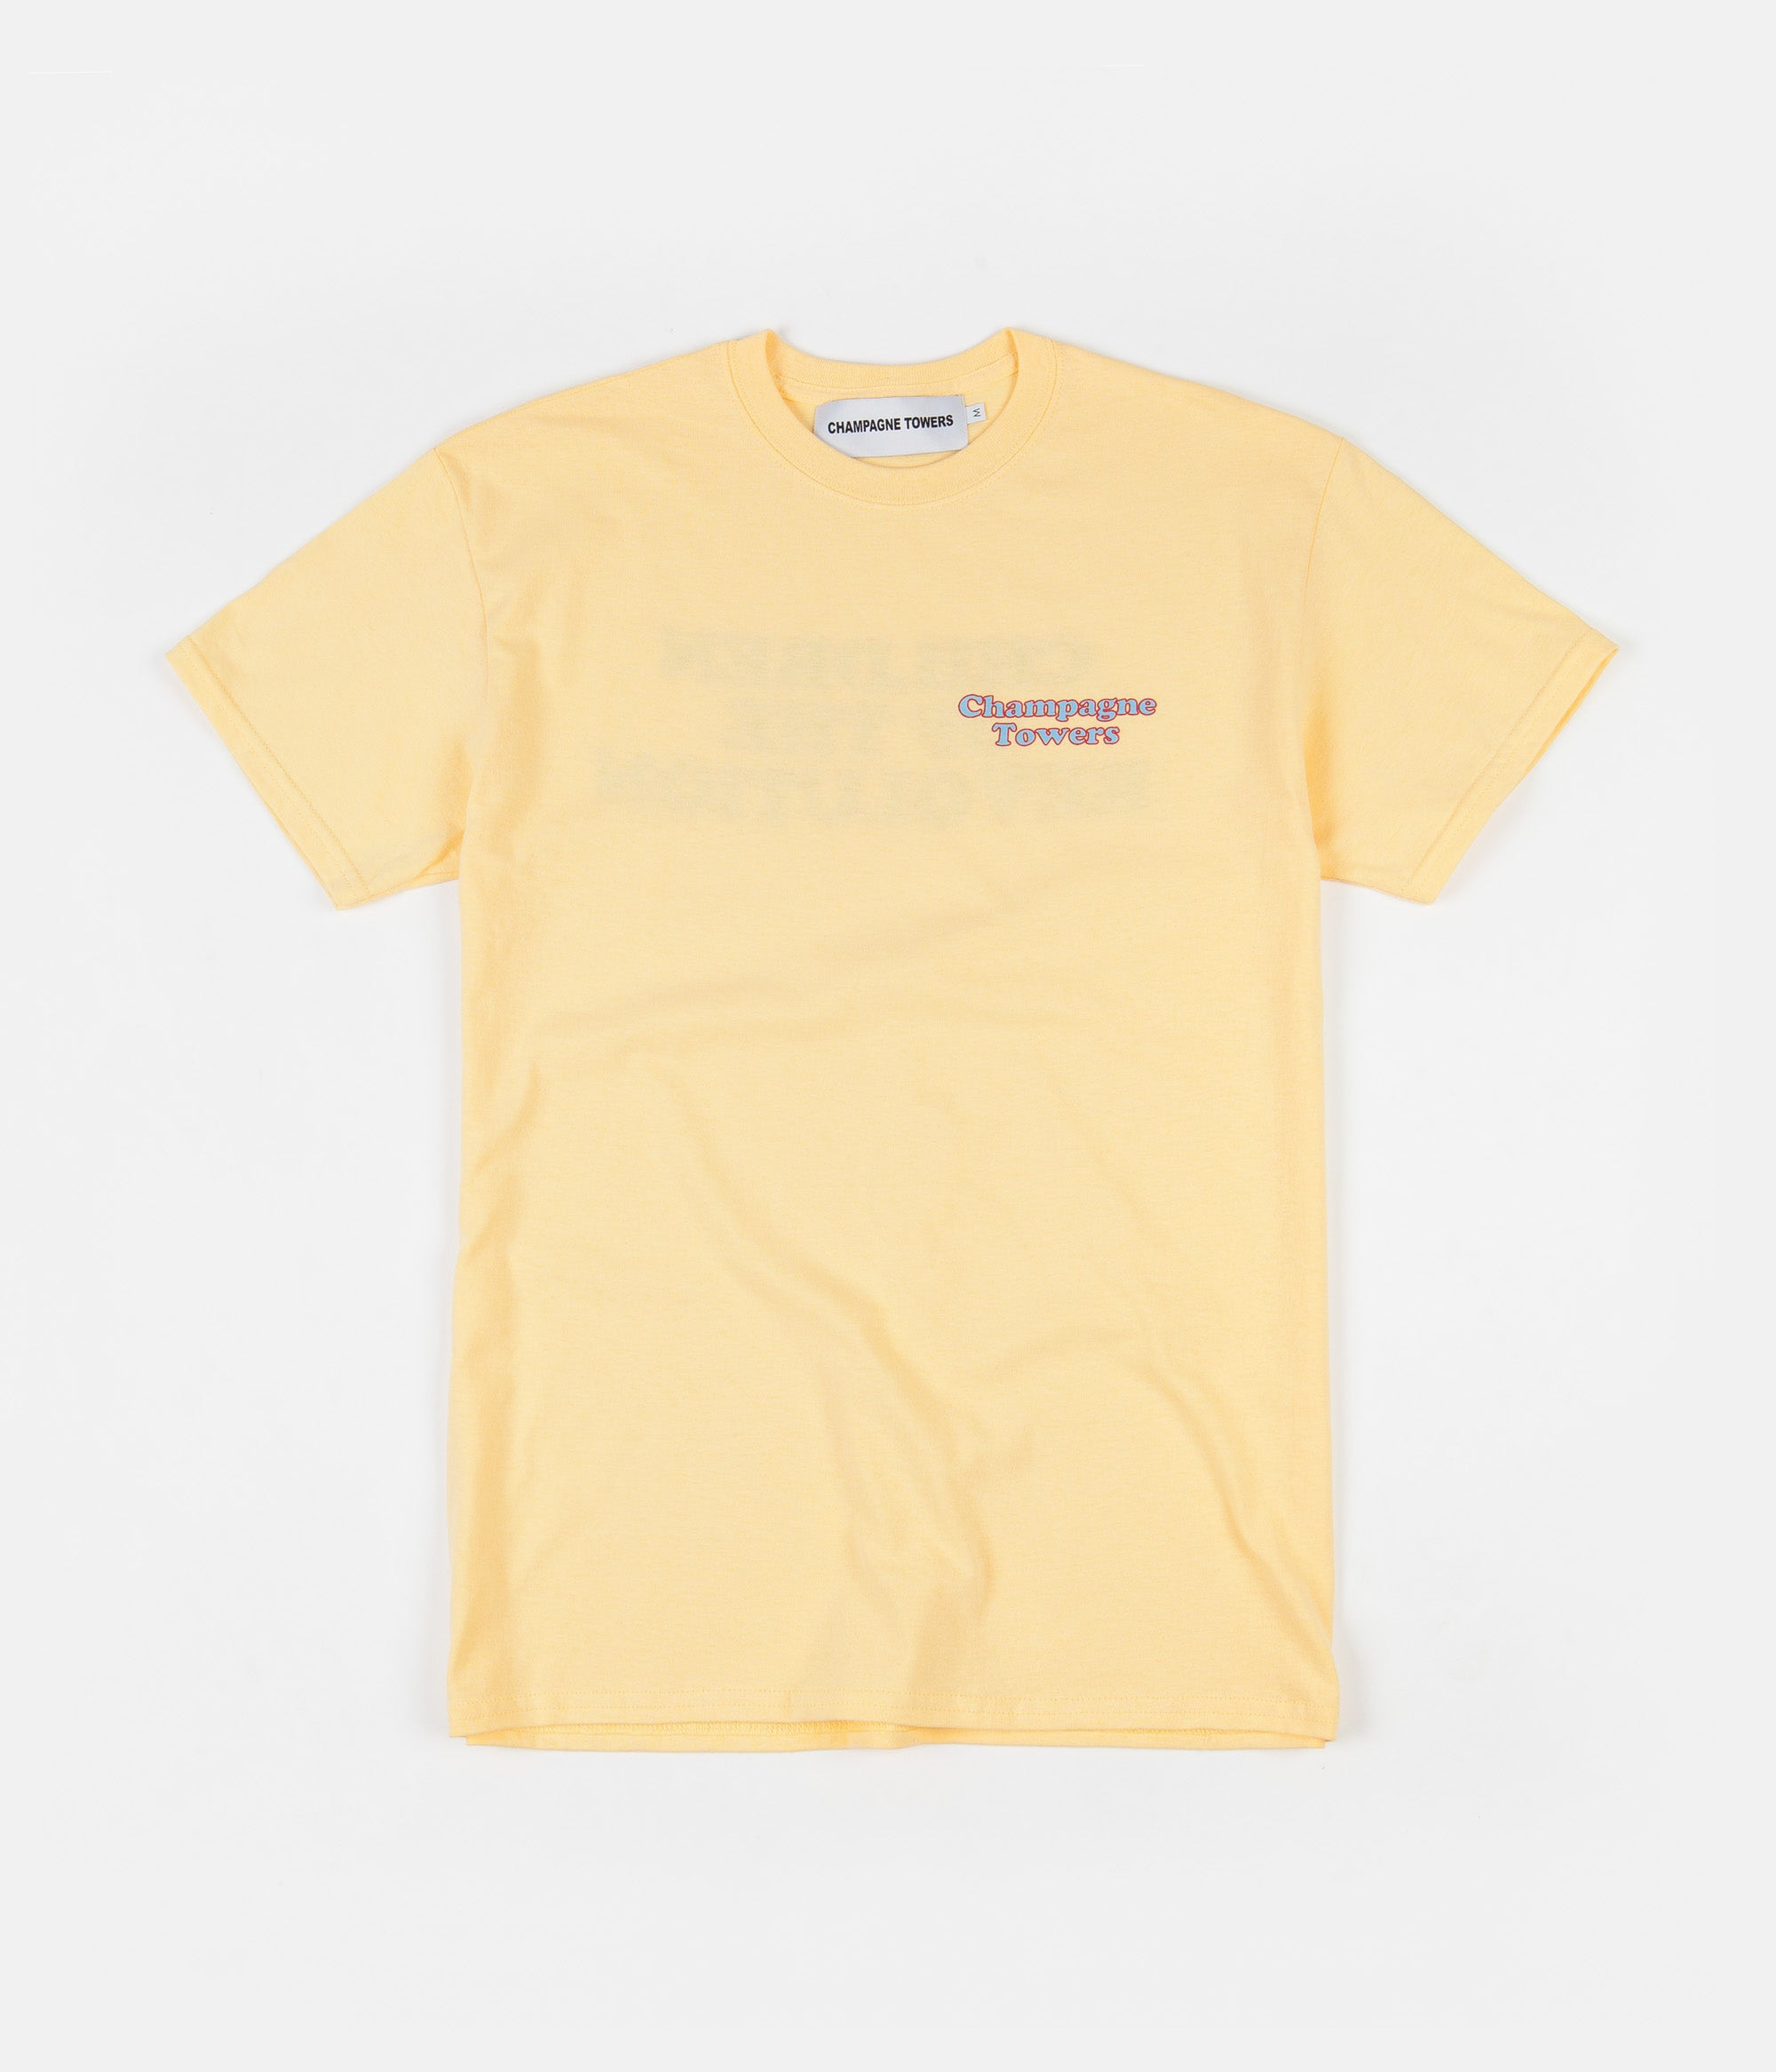 Champagne Towers Children Of The Revolution T-Shirt - Yellow Haze